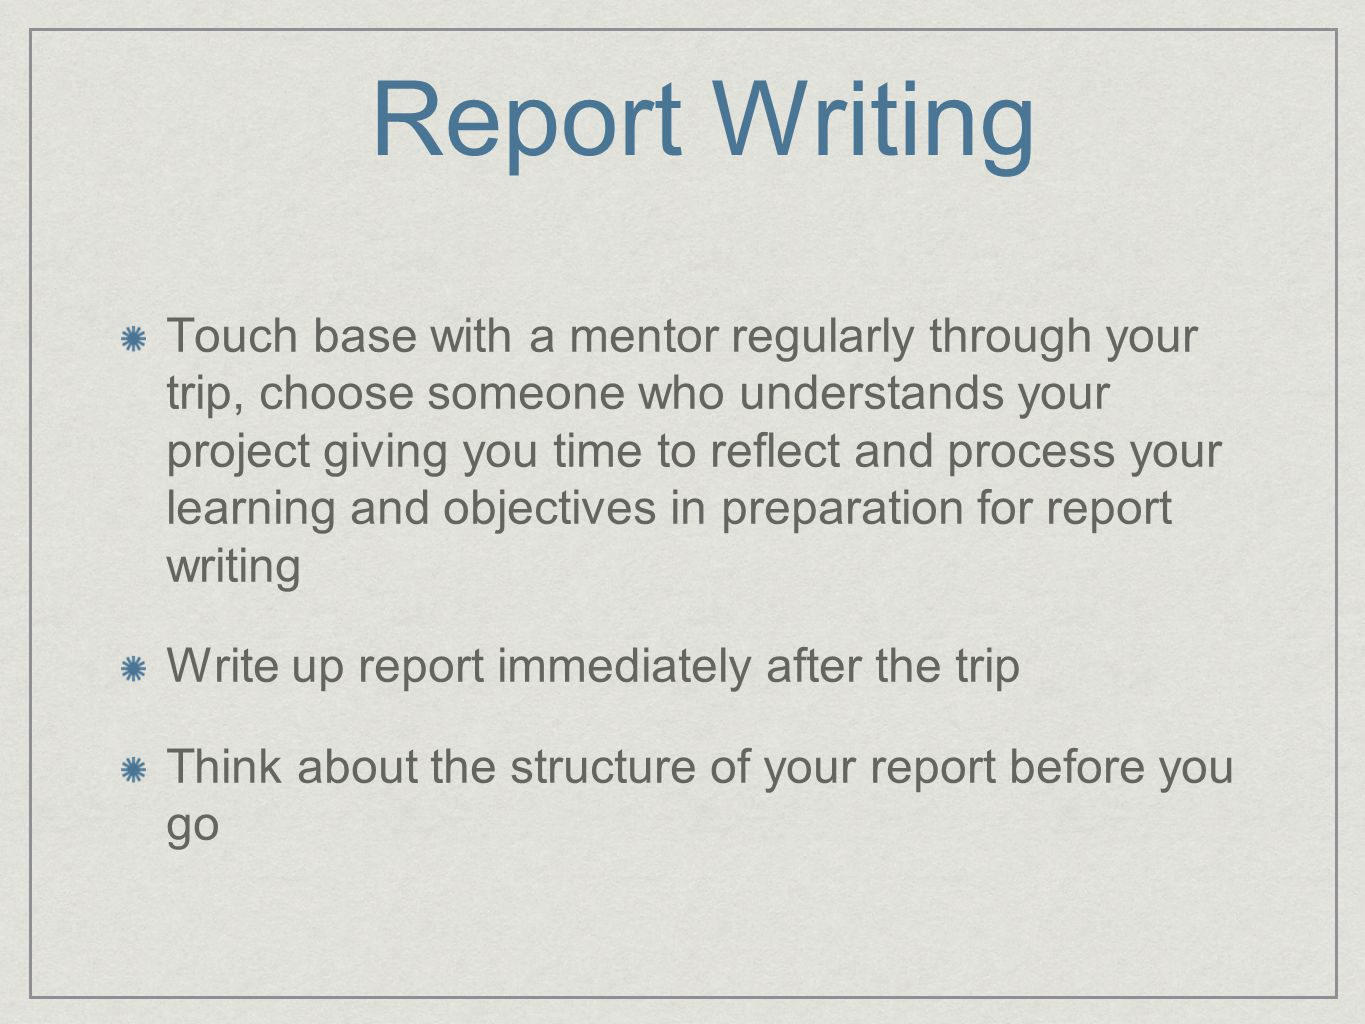 Report Writing Touch base with a mentor regularly through your trip, choose someone who understands your project giving you time to reflect and process your learning and objectives in preparation for report writing Write up report immediately after the trip Think about the structure of your report before you go